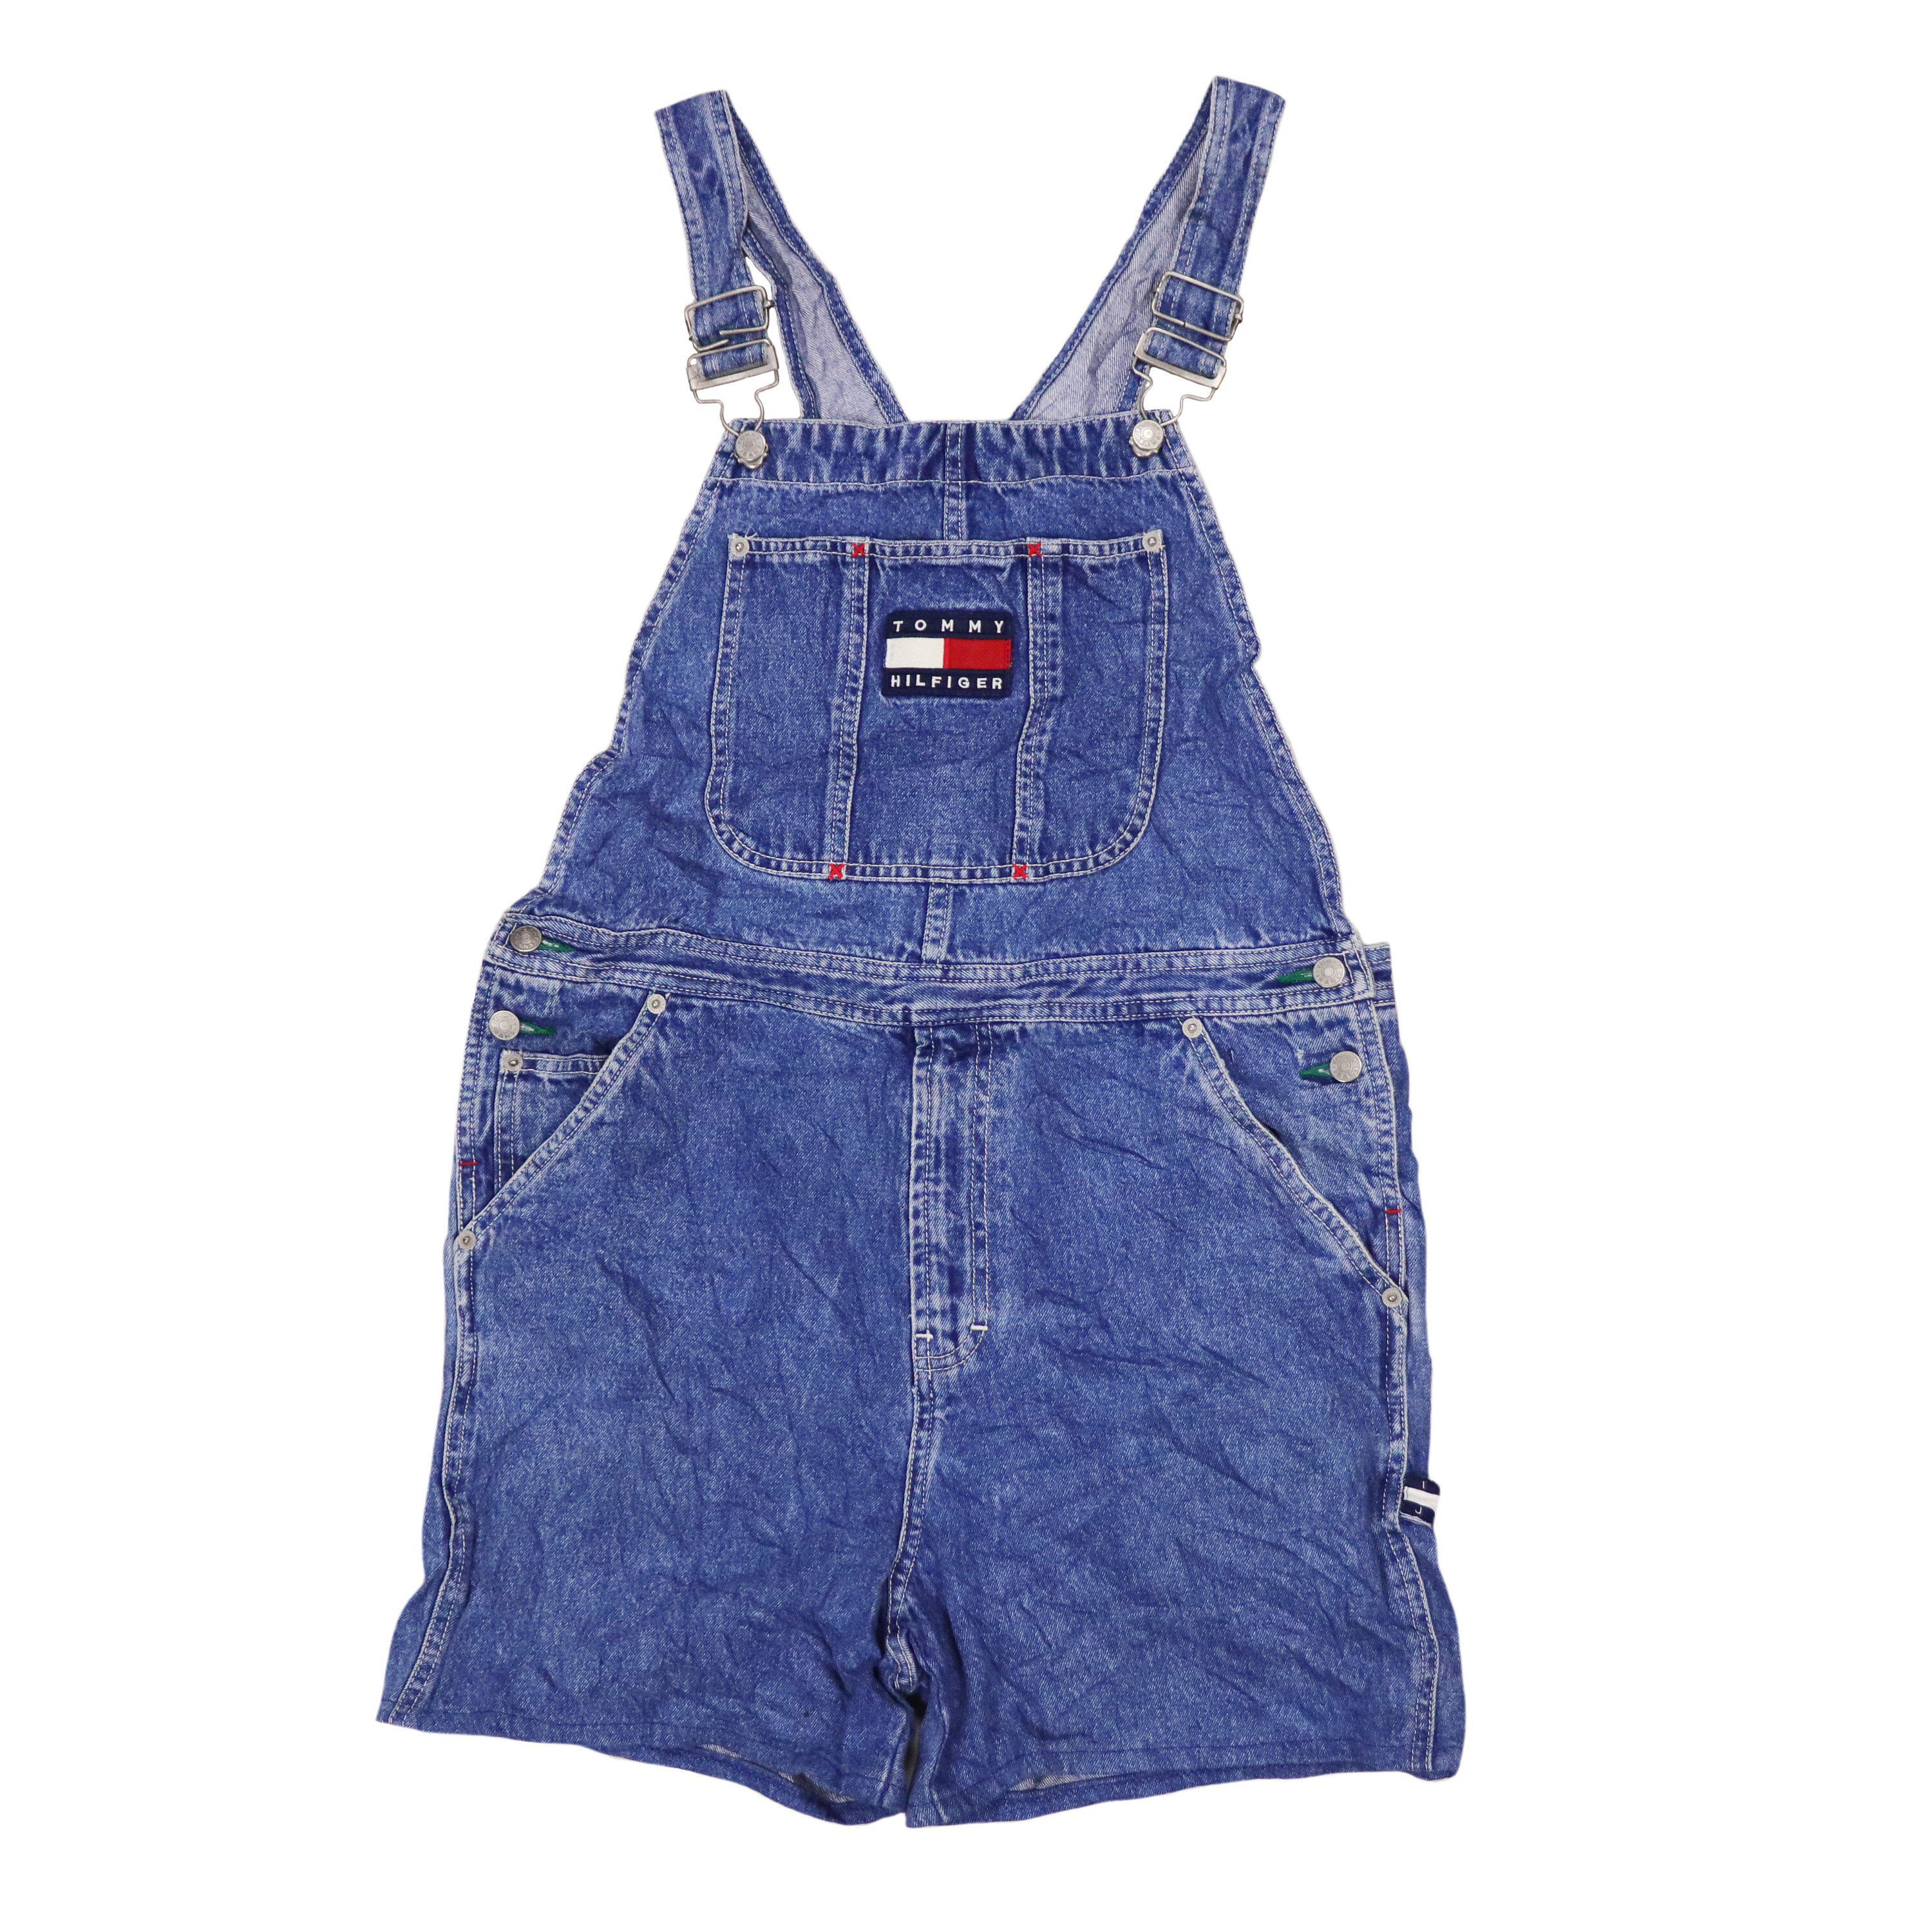 78d3155c Excited to share the latest addition to my #etsy shop: Vintage Tommy  Hilfiger Overalls Flag Logo Size L #clothing #pants #vintage #tommy # hilfiger #overalls ...